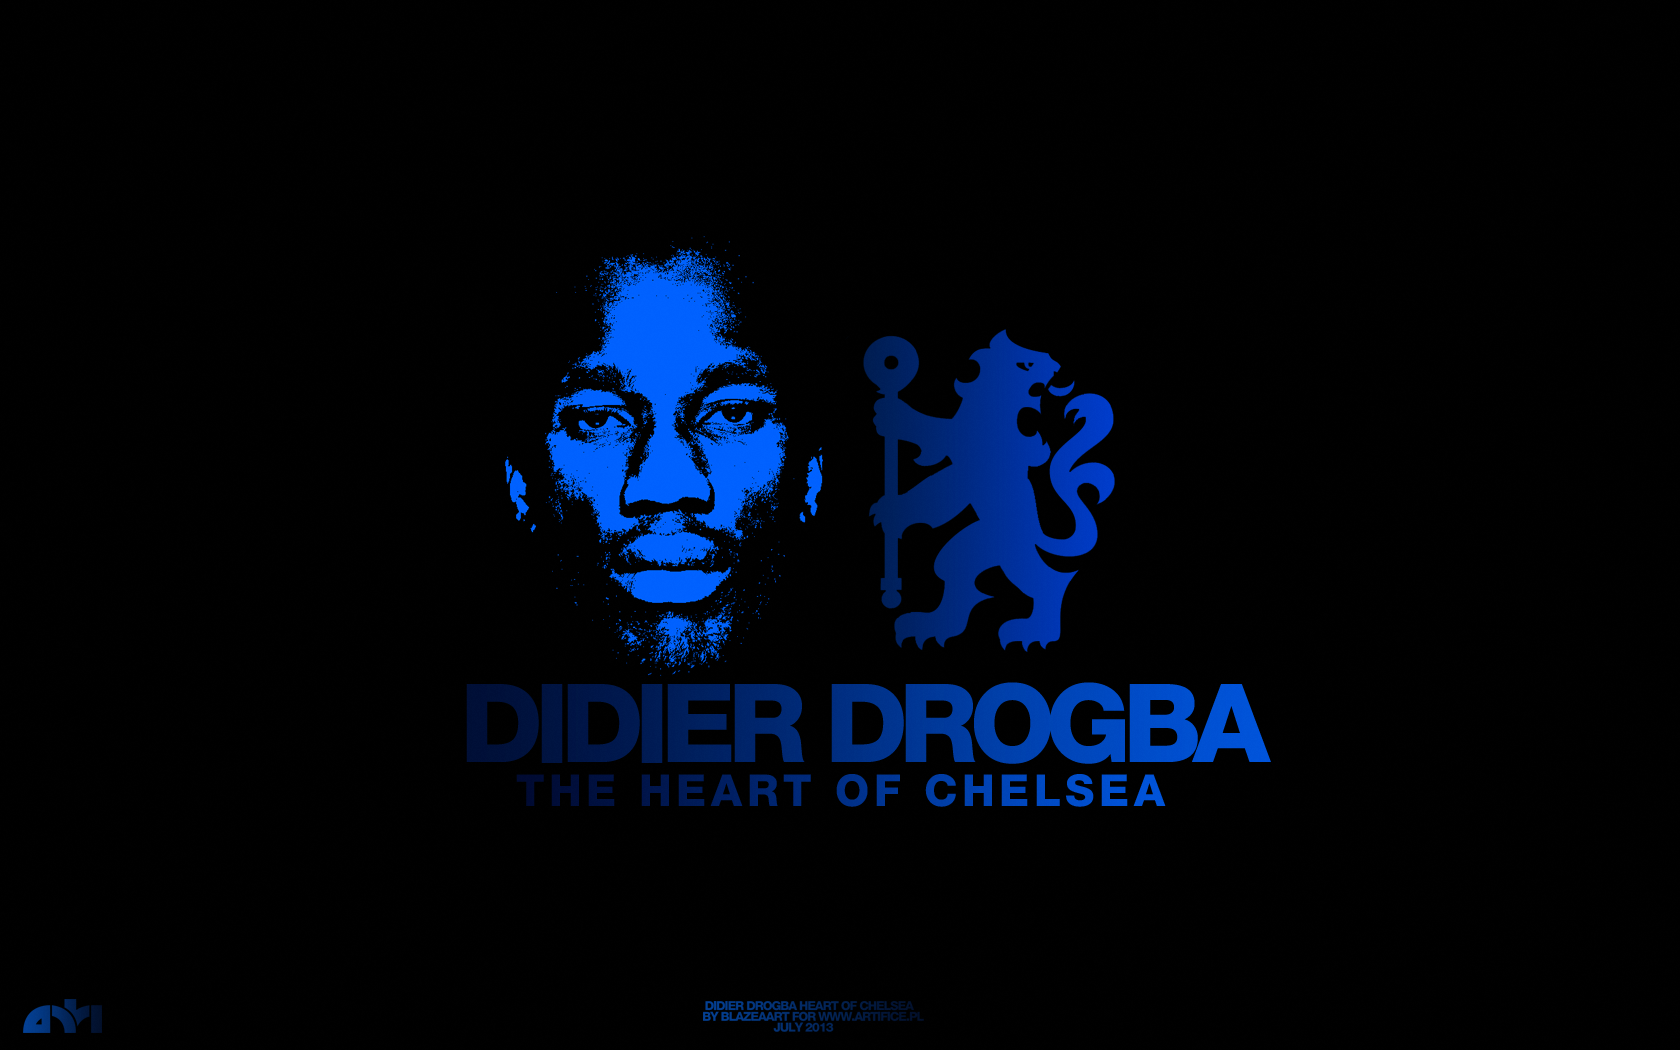 didier_drogba___the_heart_of_chelsea_fc_by_blazeaart-d6fjeth